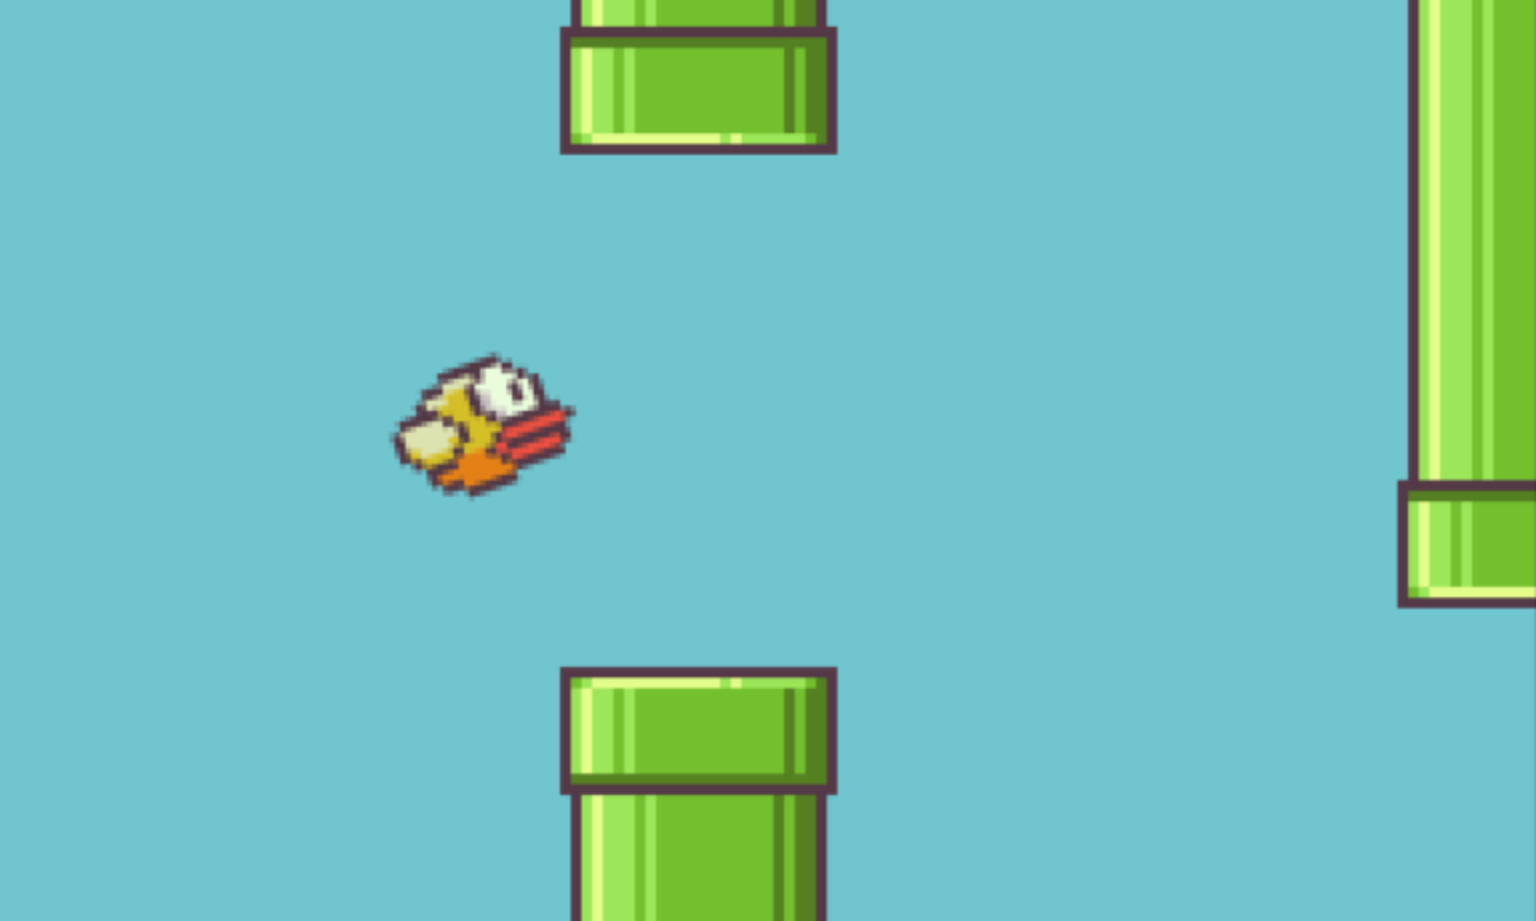 Flappy Bird Or: How I Learned To Stop Worrying And Love The à Jeux De L Oiseau